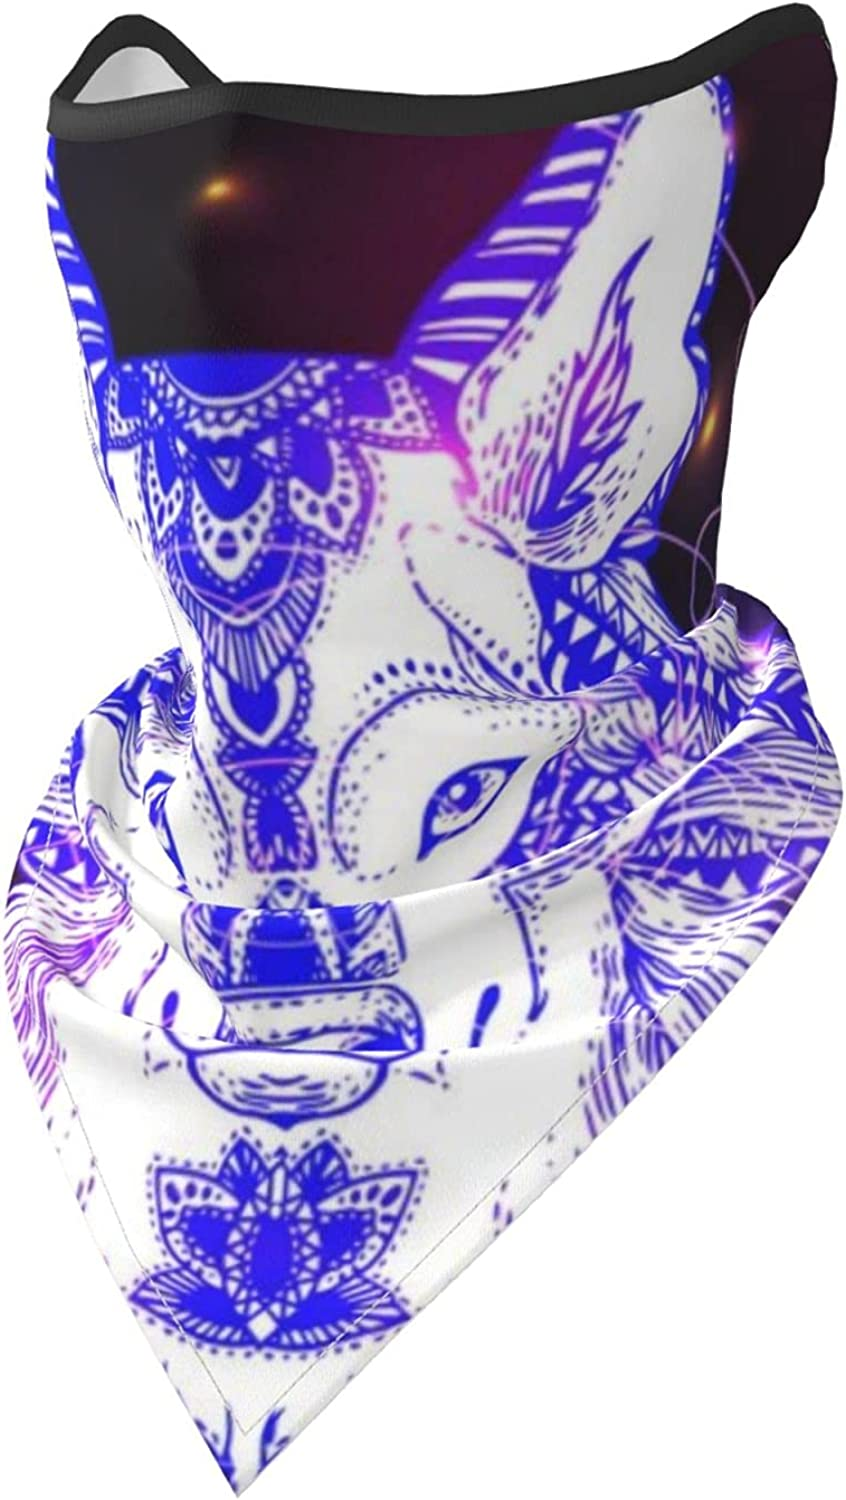 Boho Style Wolf Head Animal-4 Breathable Bandana Face Mask Neck Gaiter Windproof Sports Mask Scarf Headwear for Men Women Outdoor Hiking Cycling Running Motorcycling